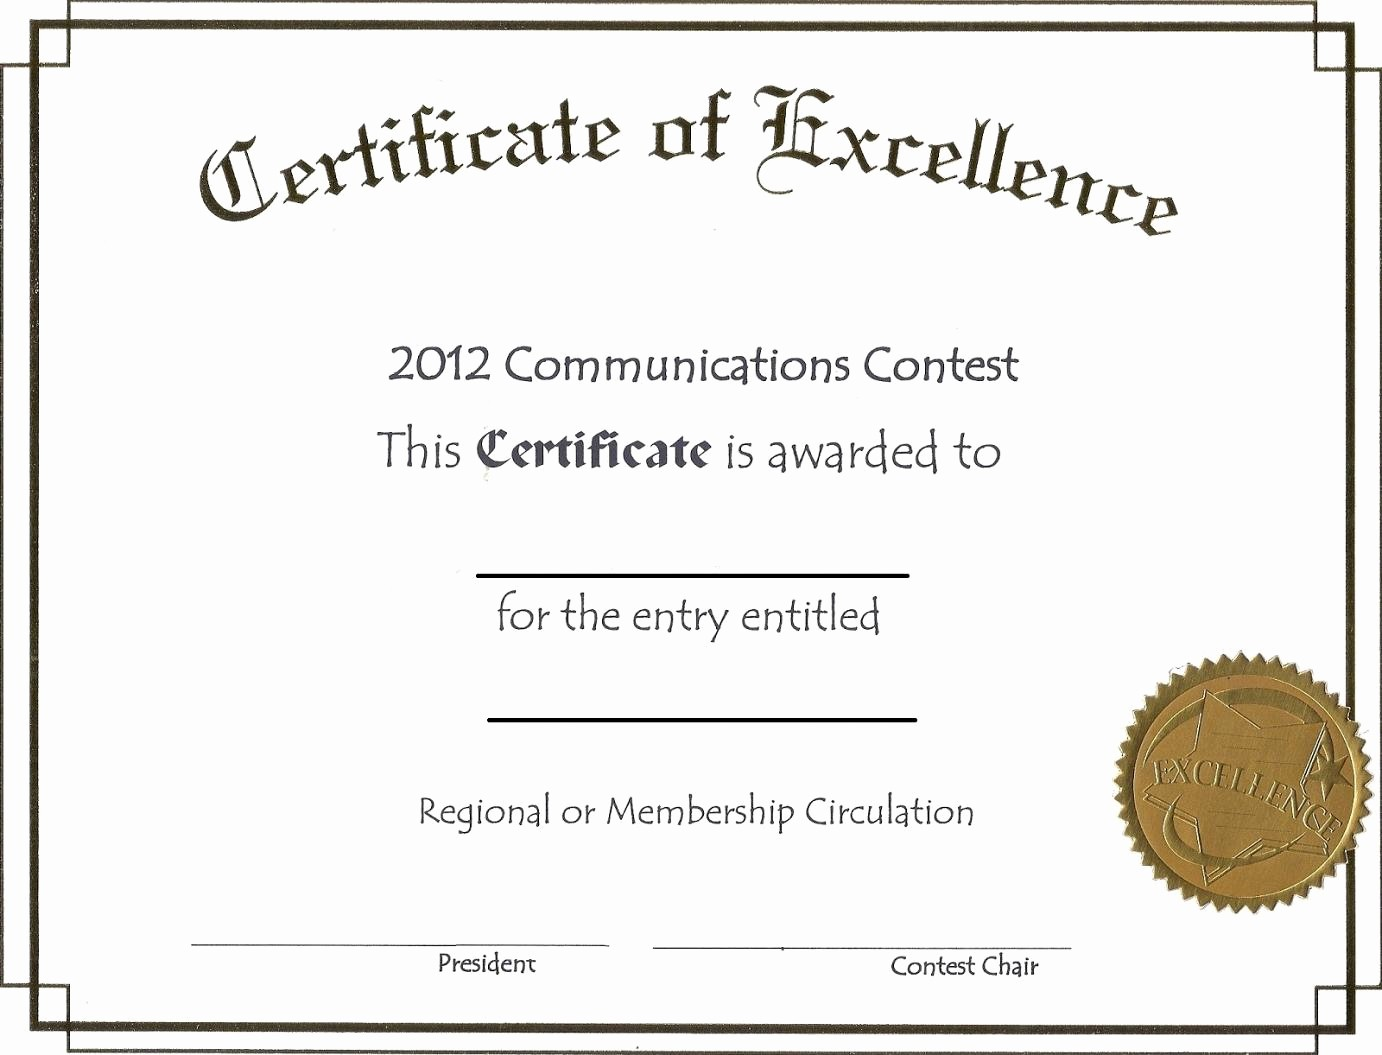 Student Council Award Certificate Template Unique Free Editable Certificate Of Excellence Template Example